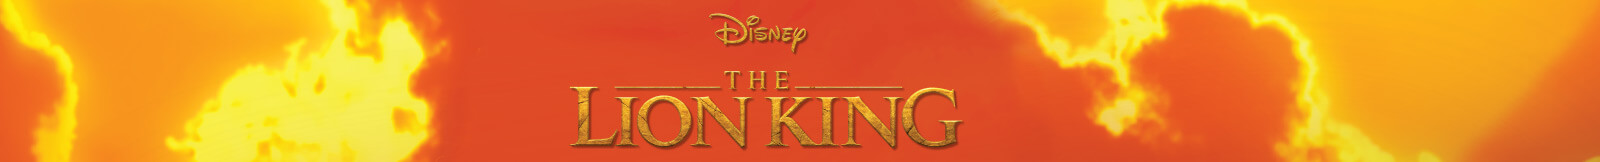 Disney's Lion King Collection